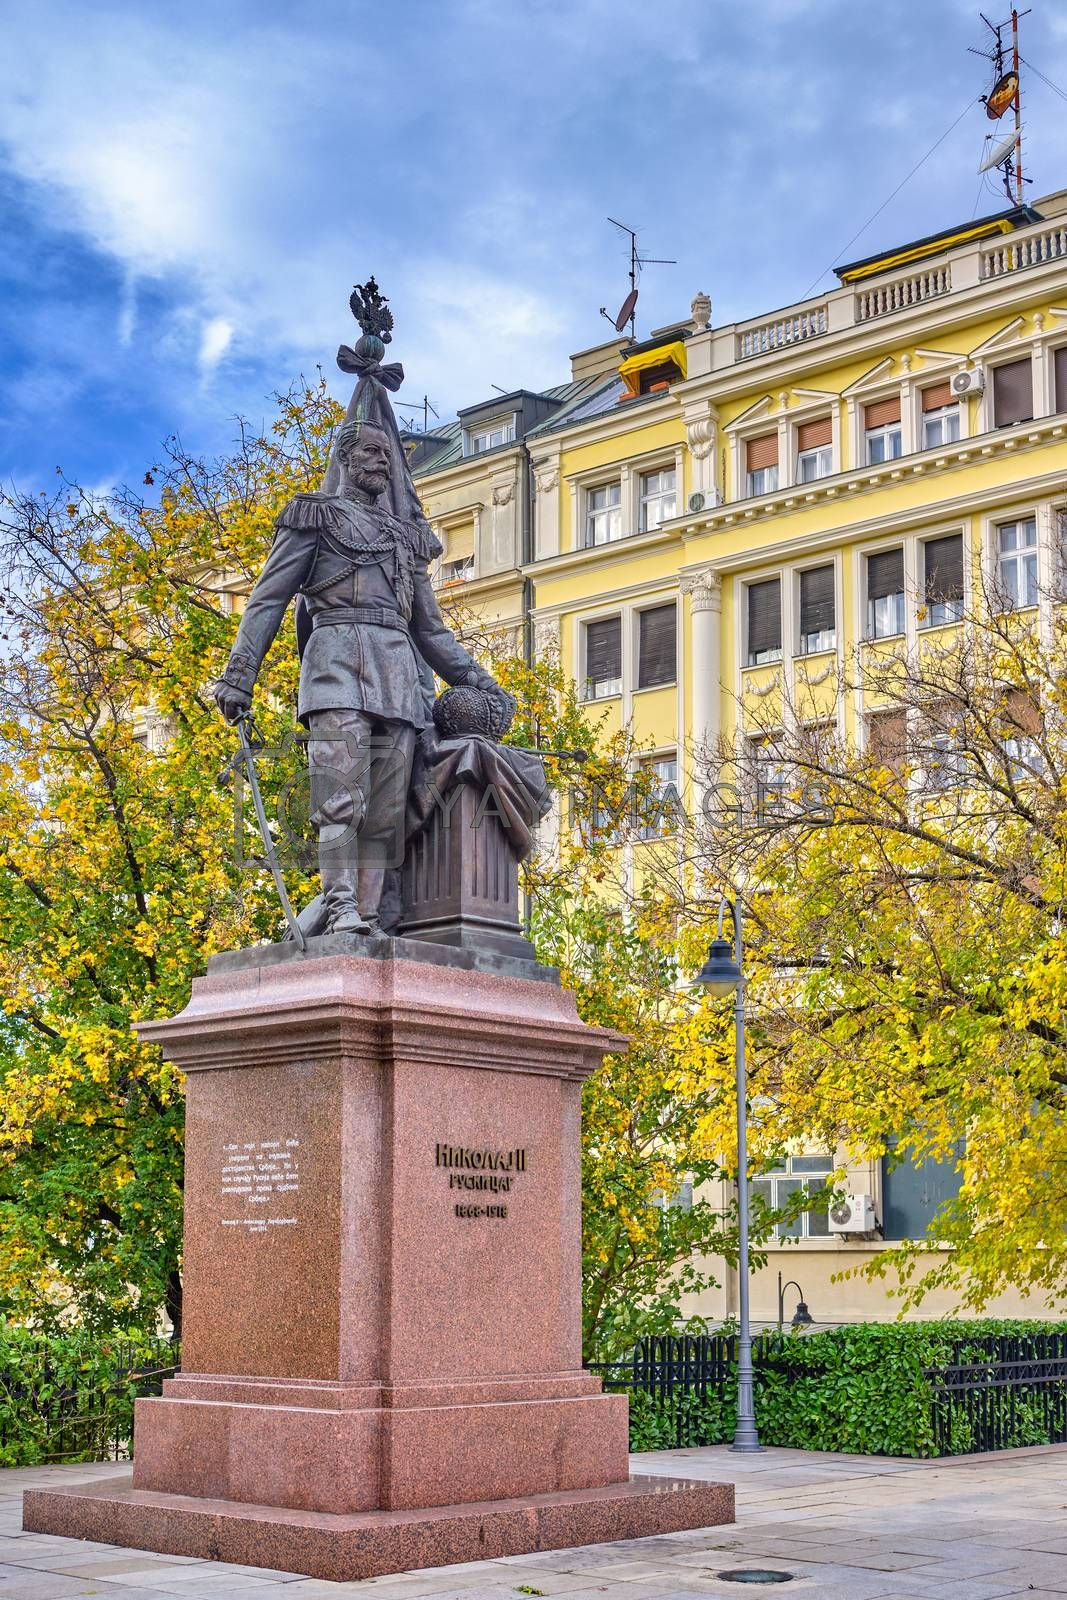 Belgrade / Serbia - November 17, 2019: Monument to Russian Emperor Nicholas II Alexandrovich Romanov in the center of Belgrade, capital of Serbia, in honor of his support to Serbia in First World War